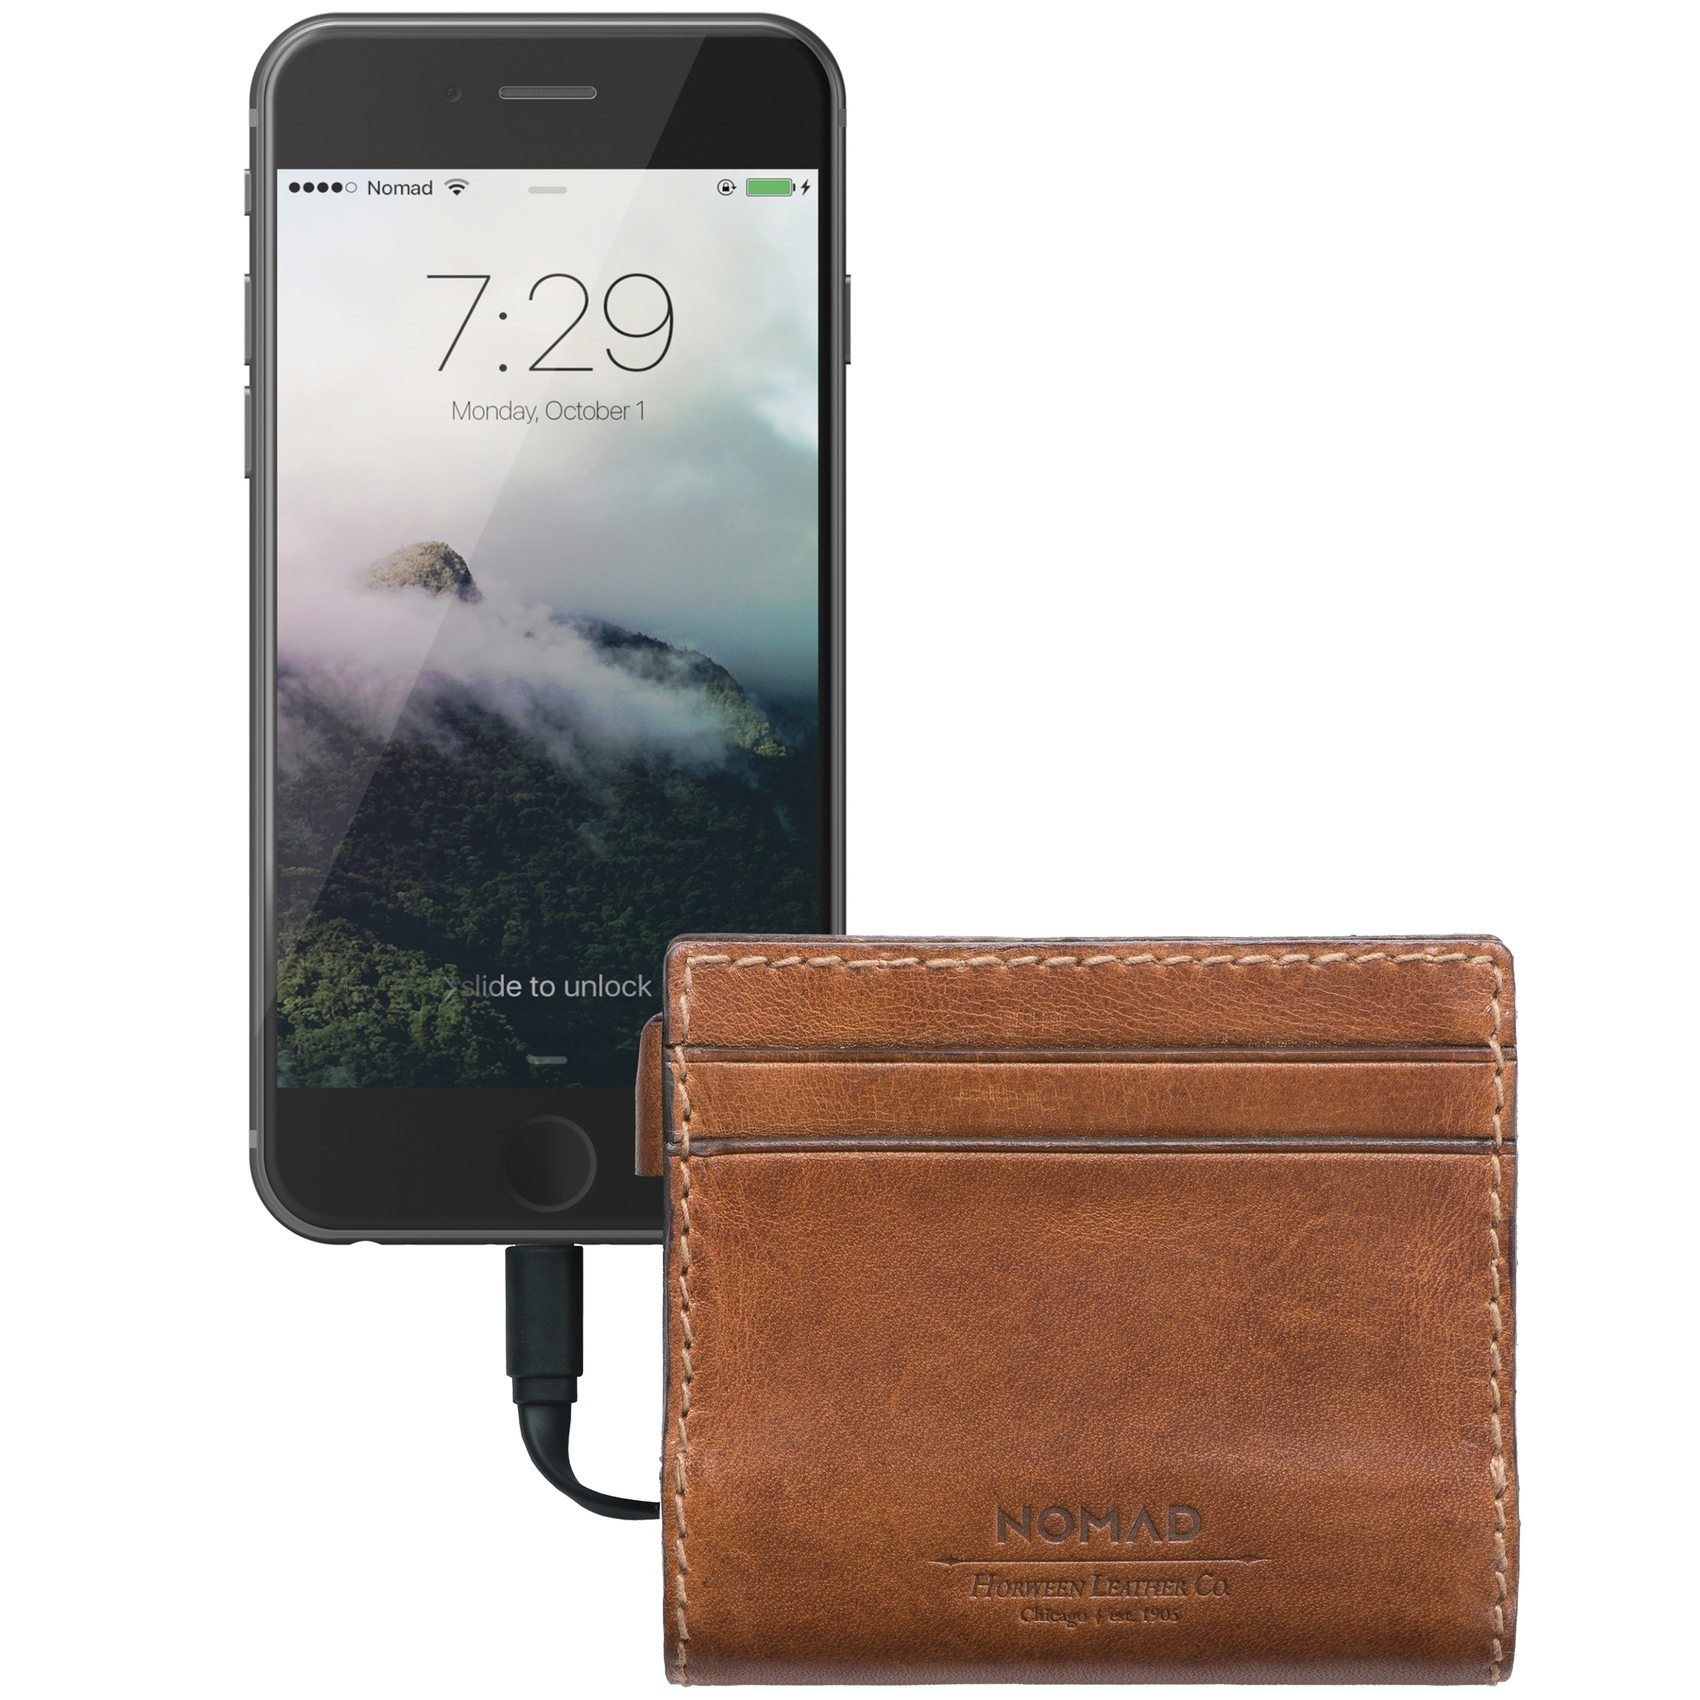 Nomad Slim Horween Leather Charging Wallet for iPhone by Nomad (Image #4)